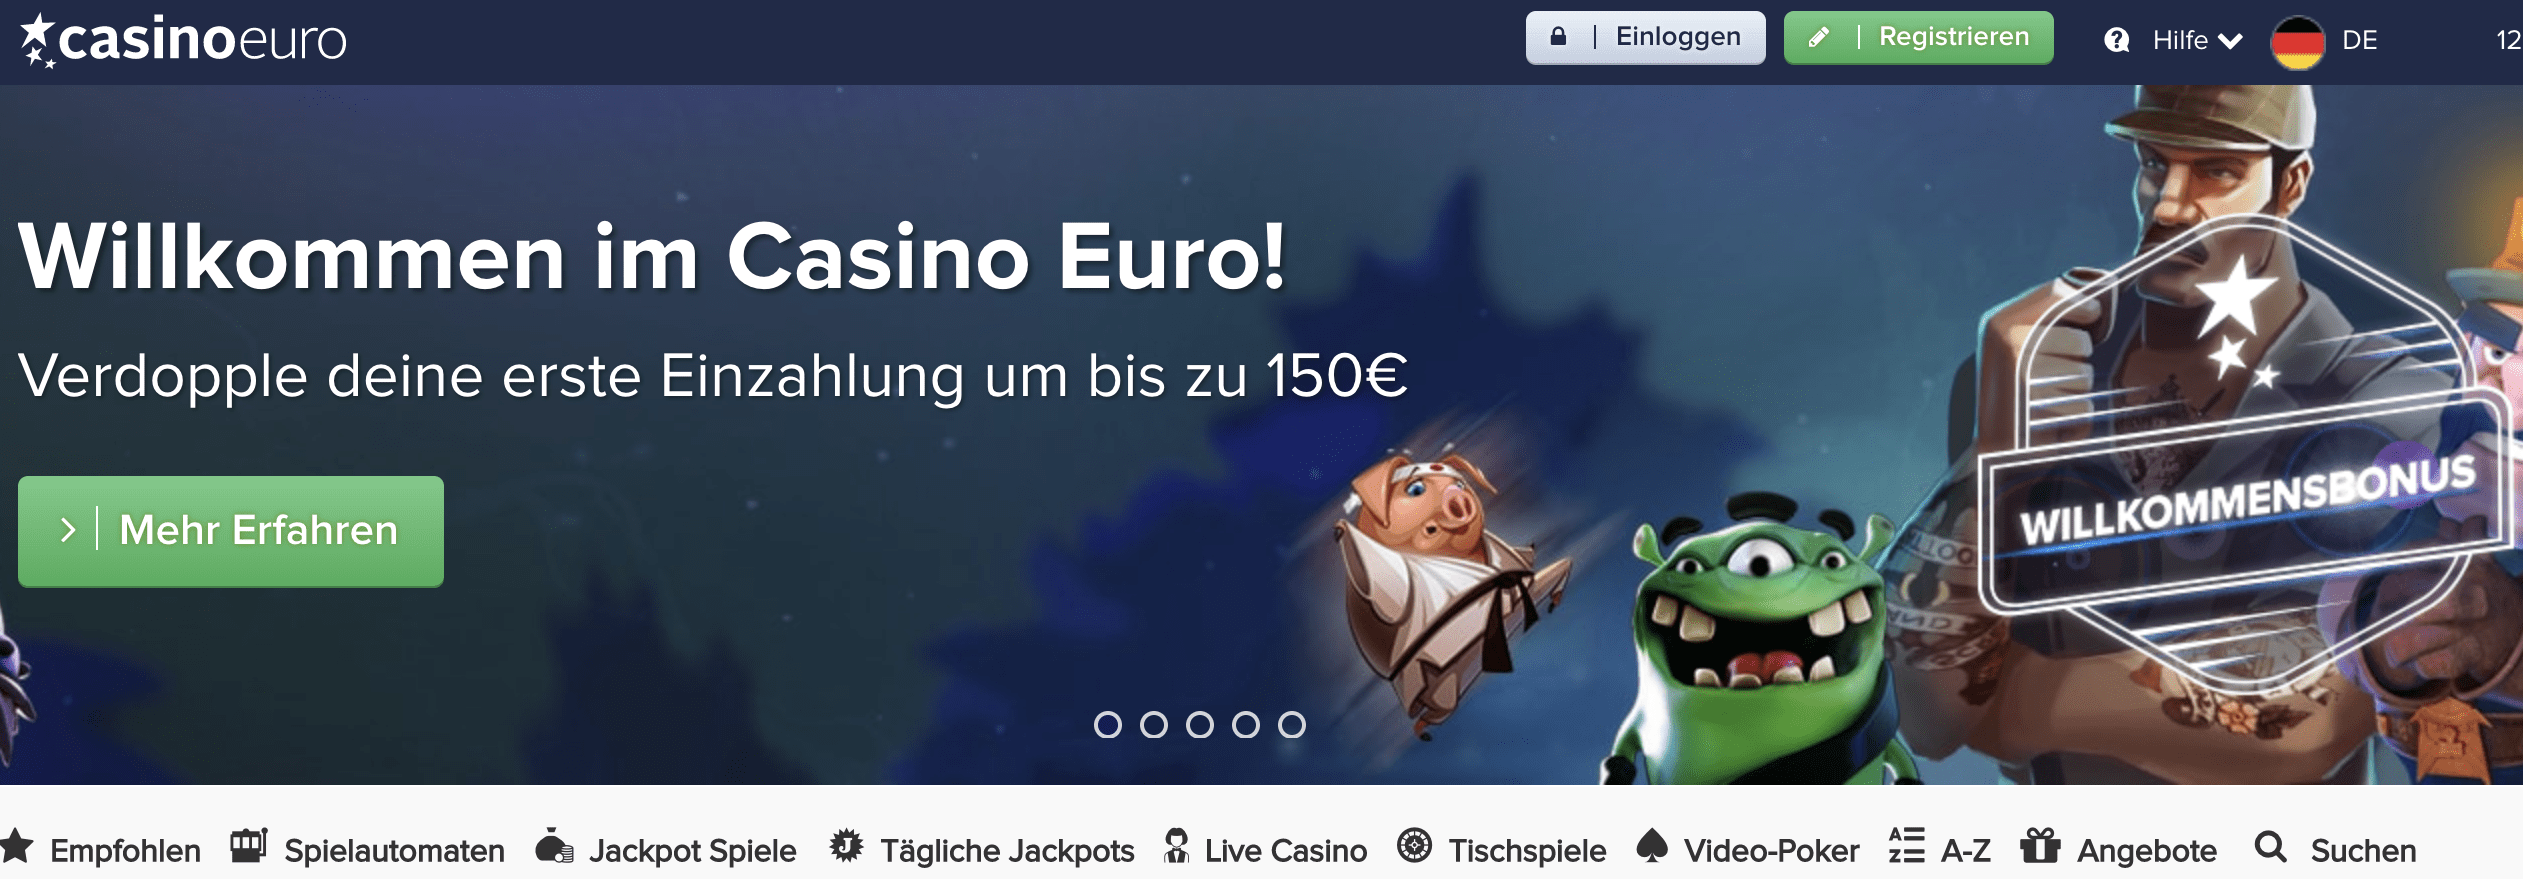 casinoeuro test